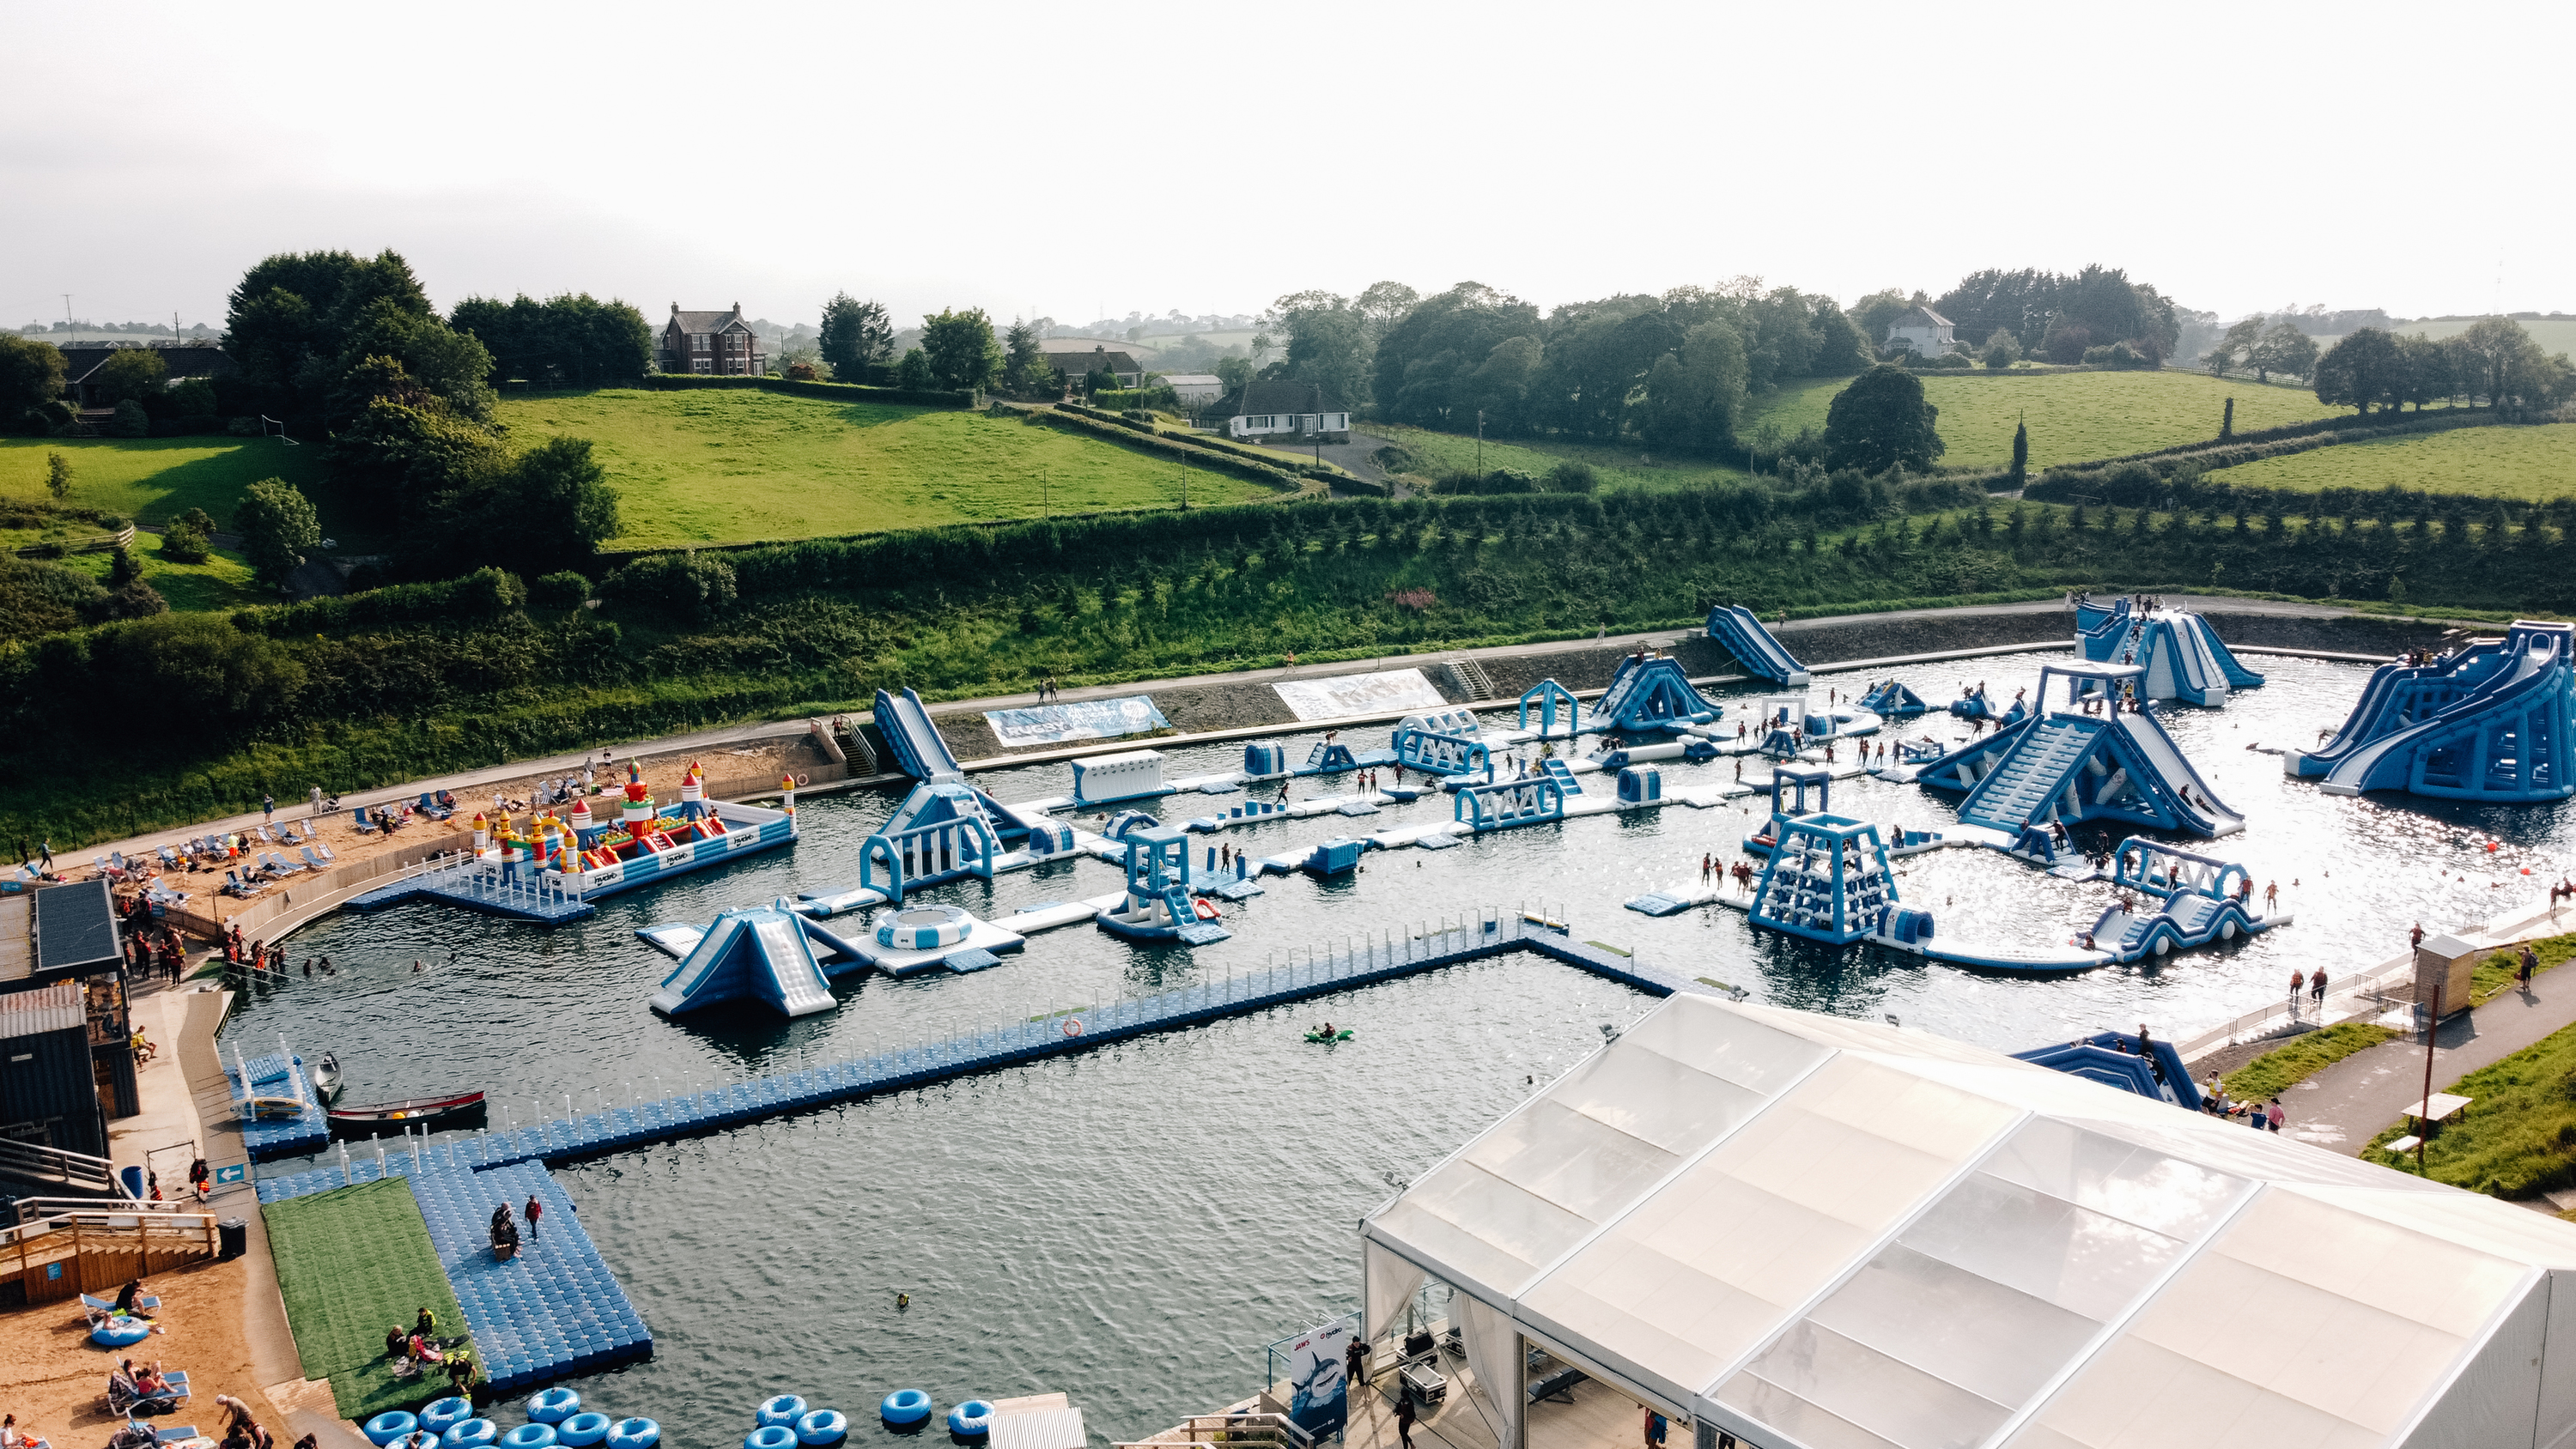 Let's Go Hydro, nn inflatable adventure playground floating on Belfast's Knockbracken Reservoir, surrounded by green fields and trees